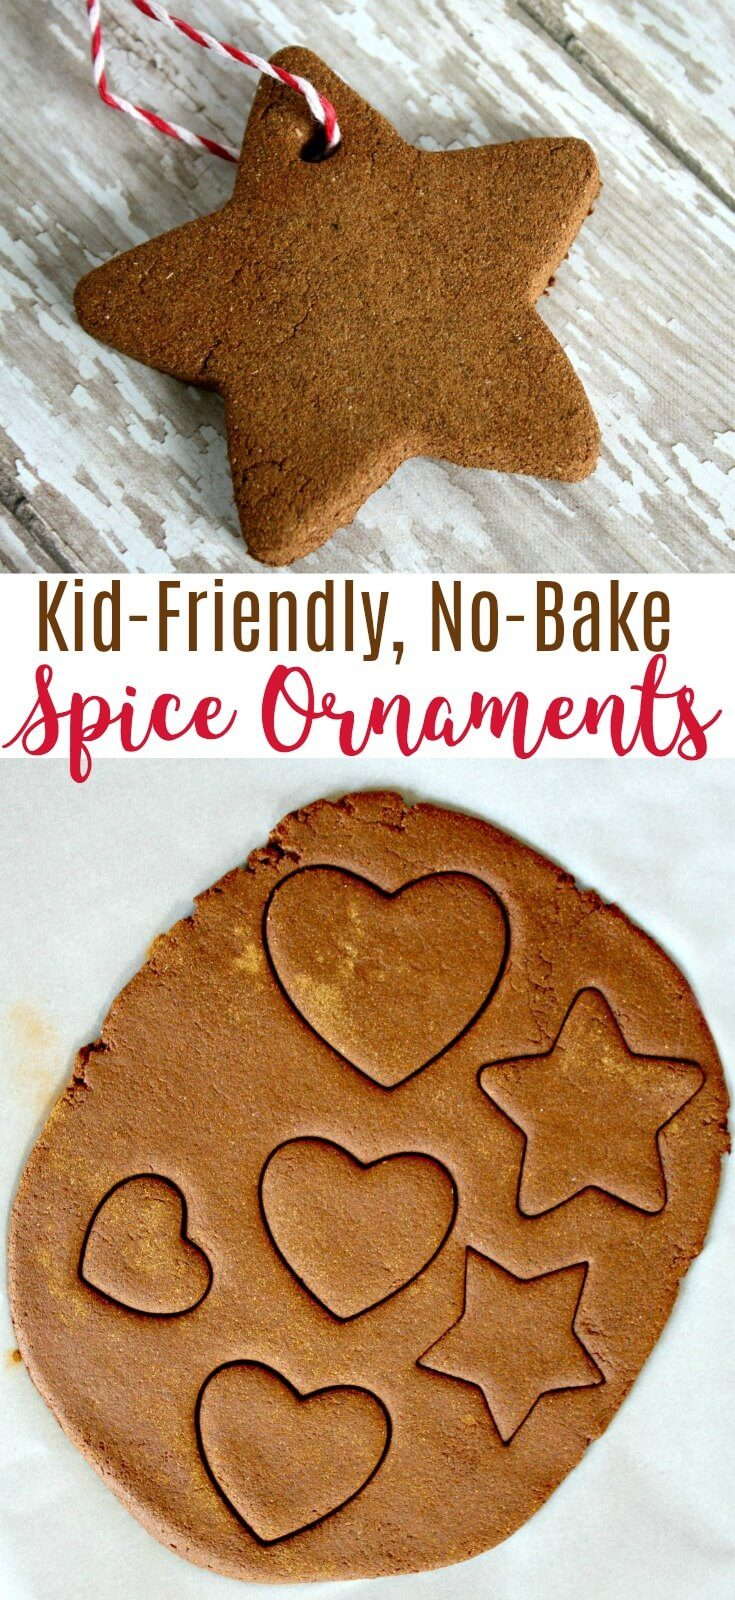 You can make these spice ornaments in just minutes and have a keepsake garland or tree decorations in no time. #spiceornaments #cinnamonornaments #christmasornaments #rufflesandrainboots